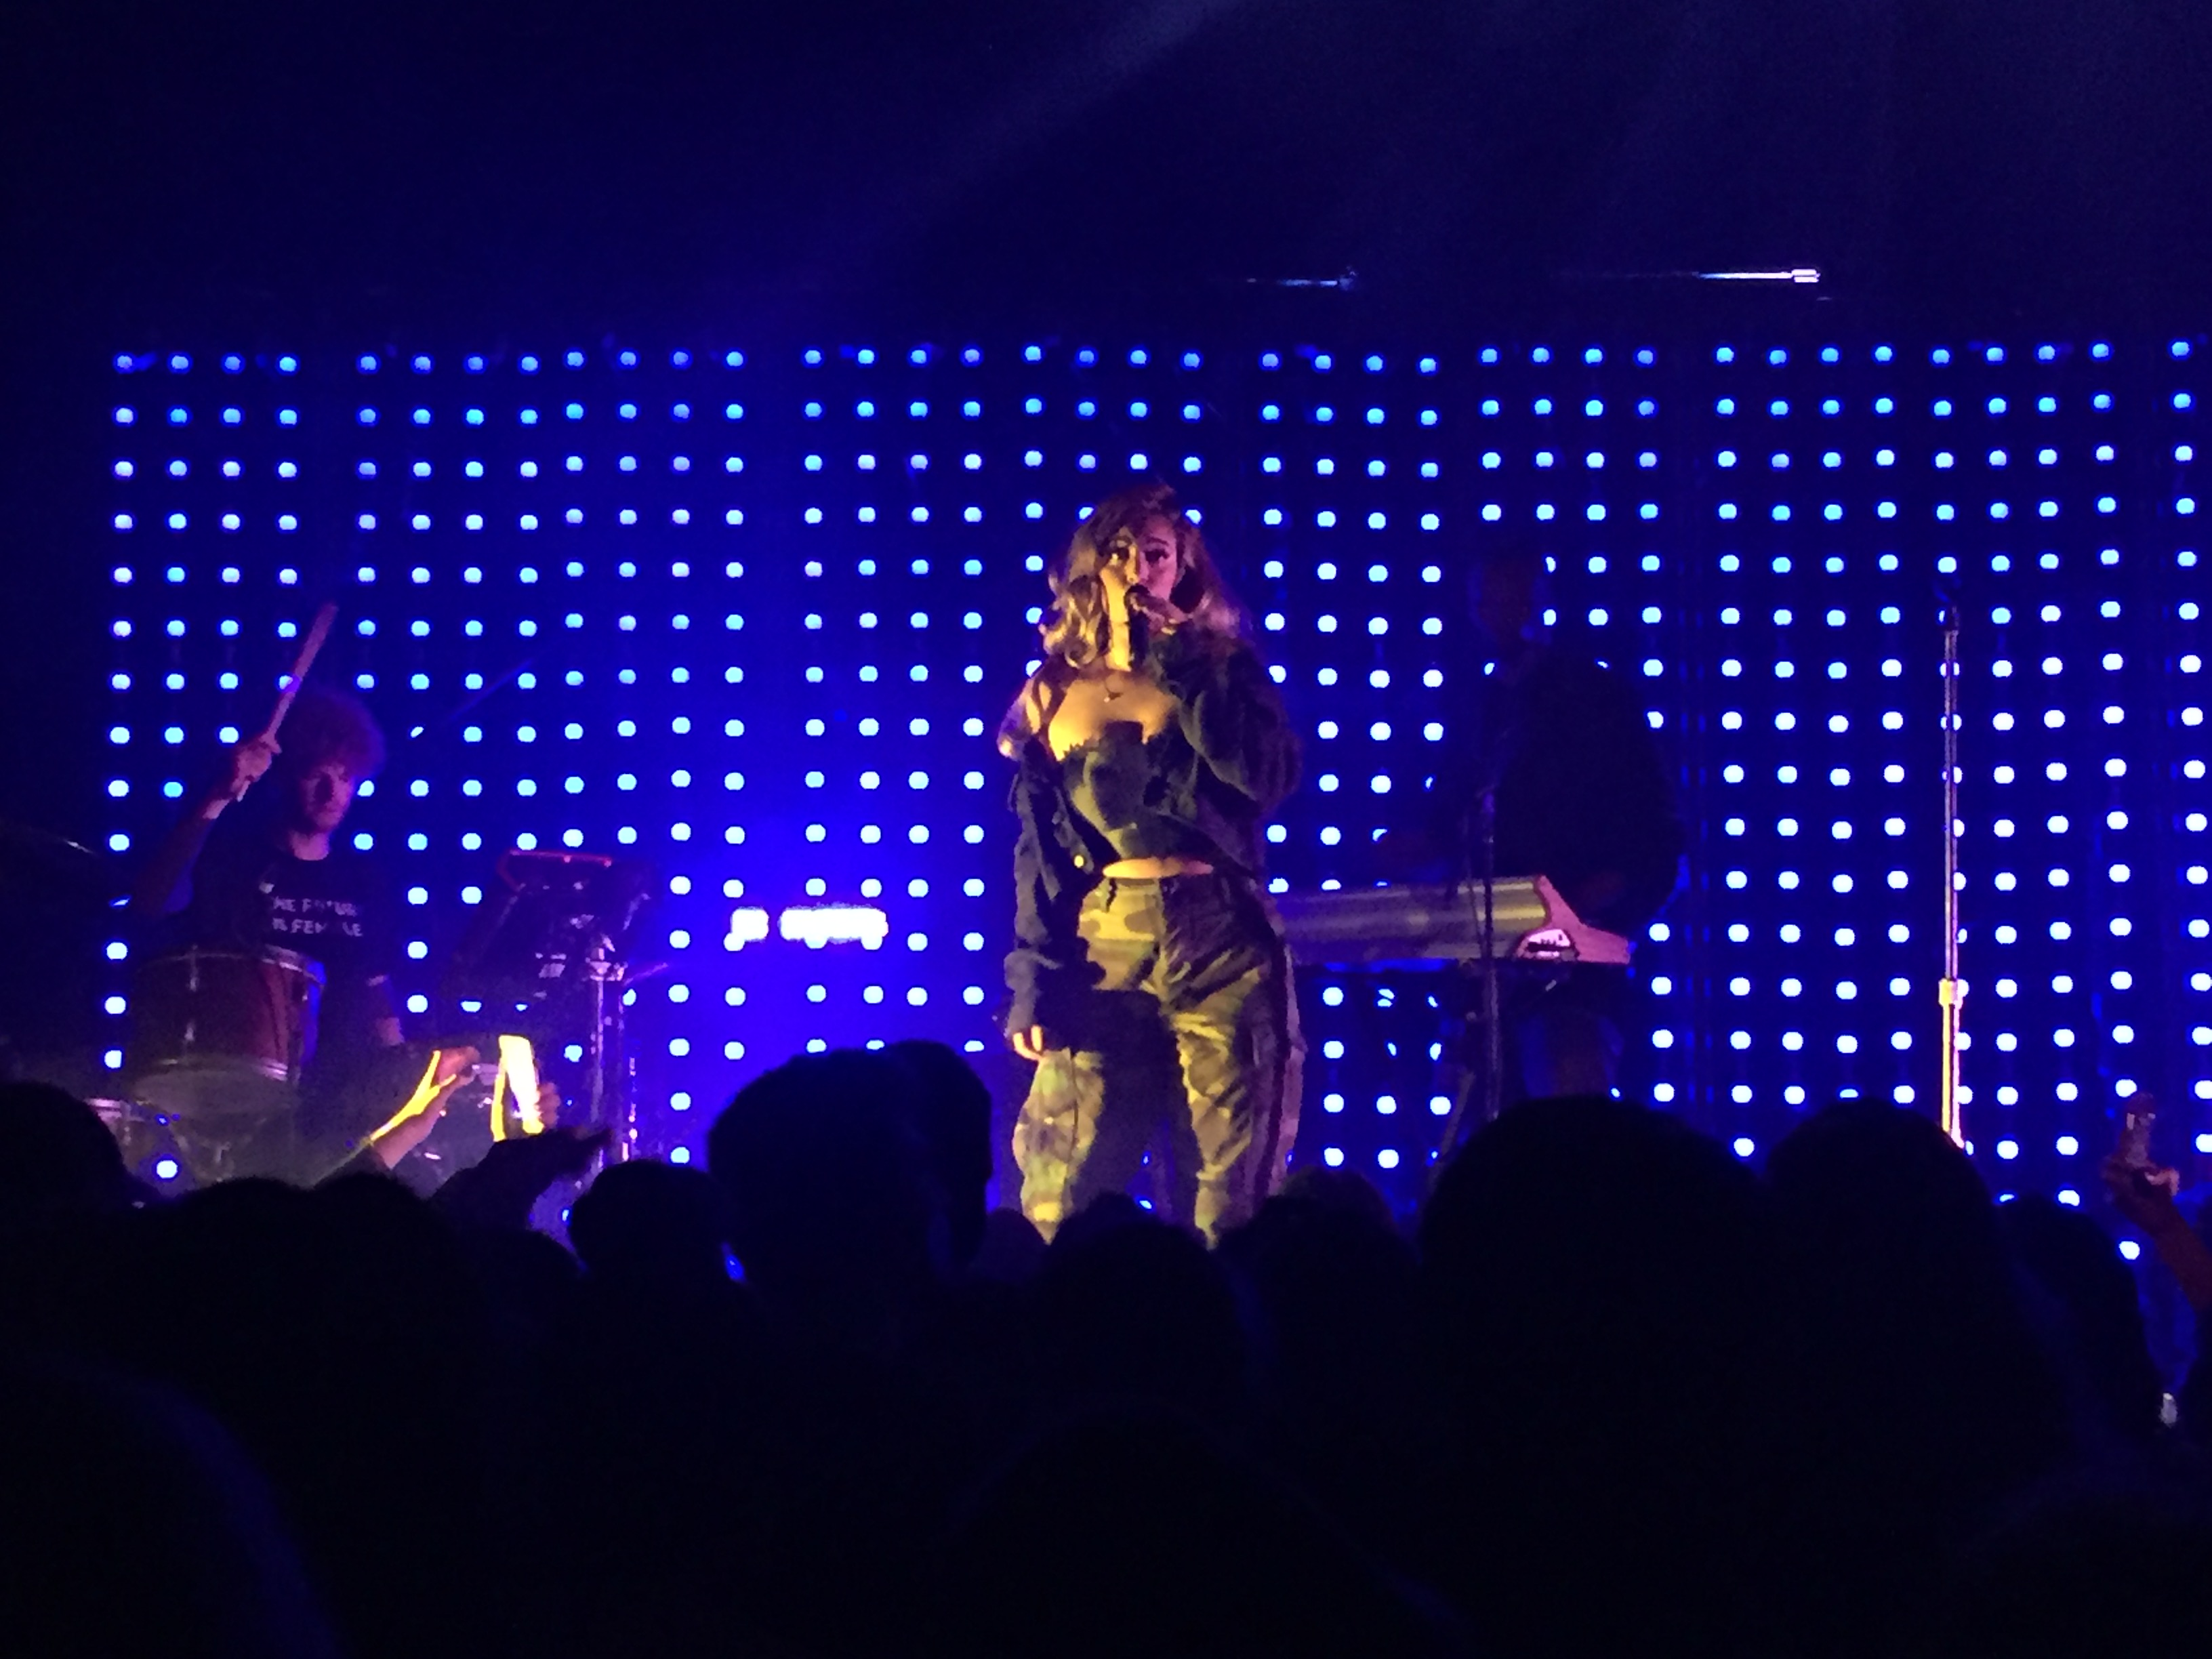 Alina Baraz put on an incredible show at The Imperial in Vancouver